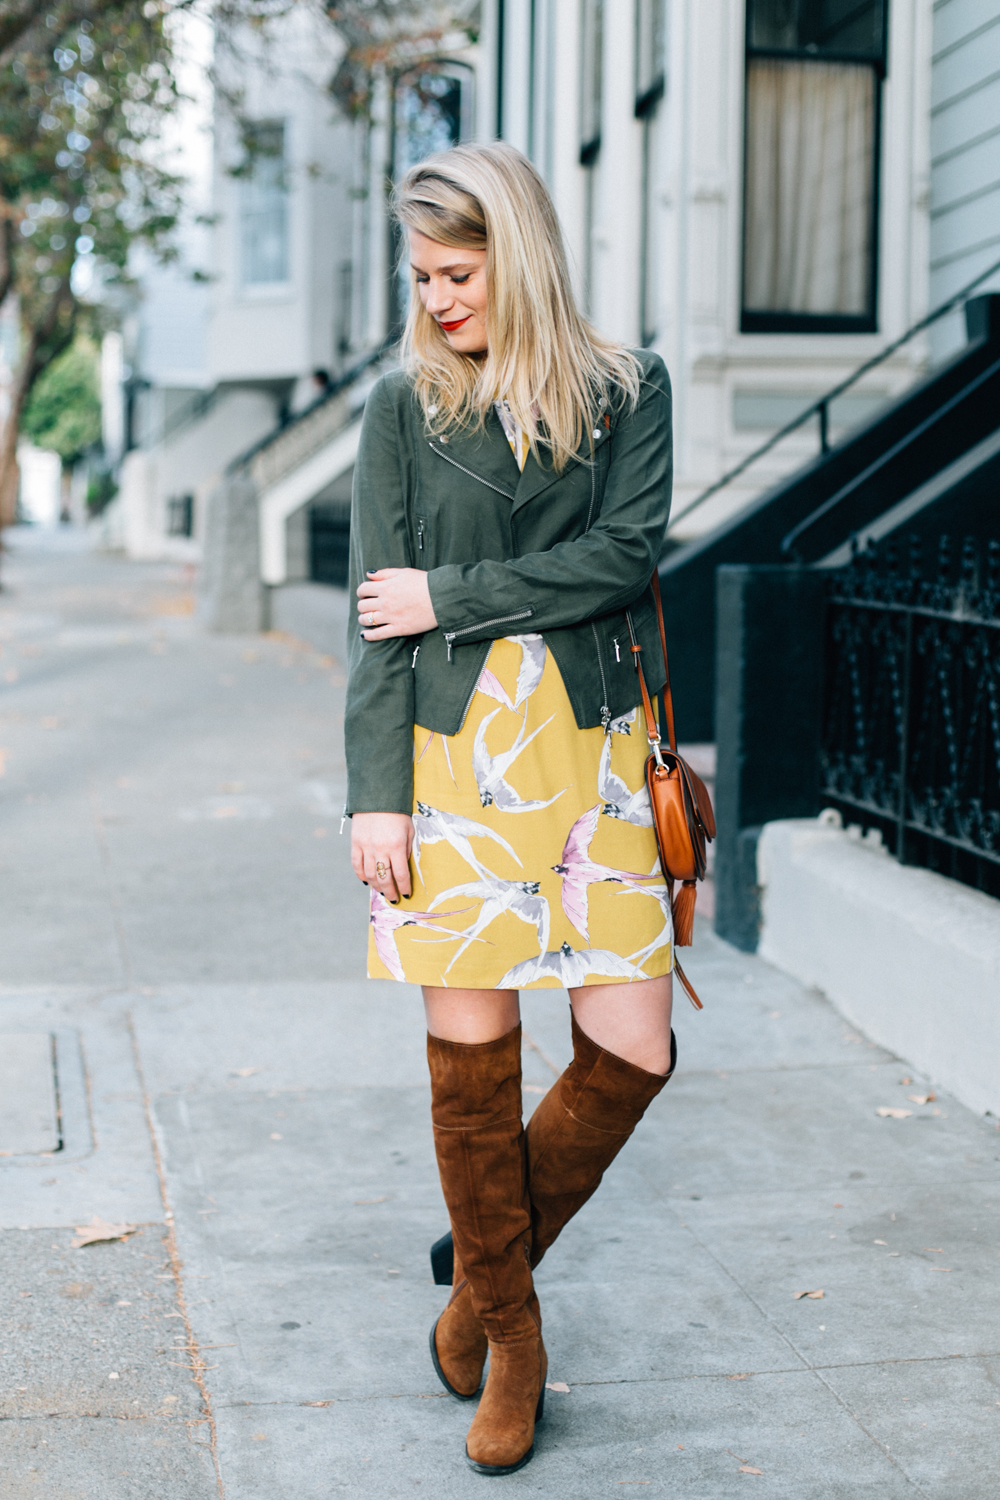 Fall Outfit Inspiration // Ann Taylor Shift Dress with Olive Club Monaco Moto Jacket and Steve Madden Over the Knee Boots.